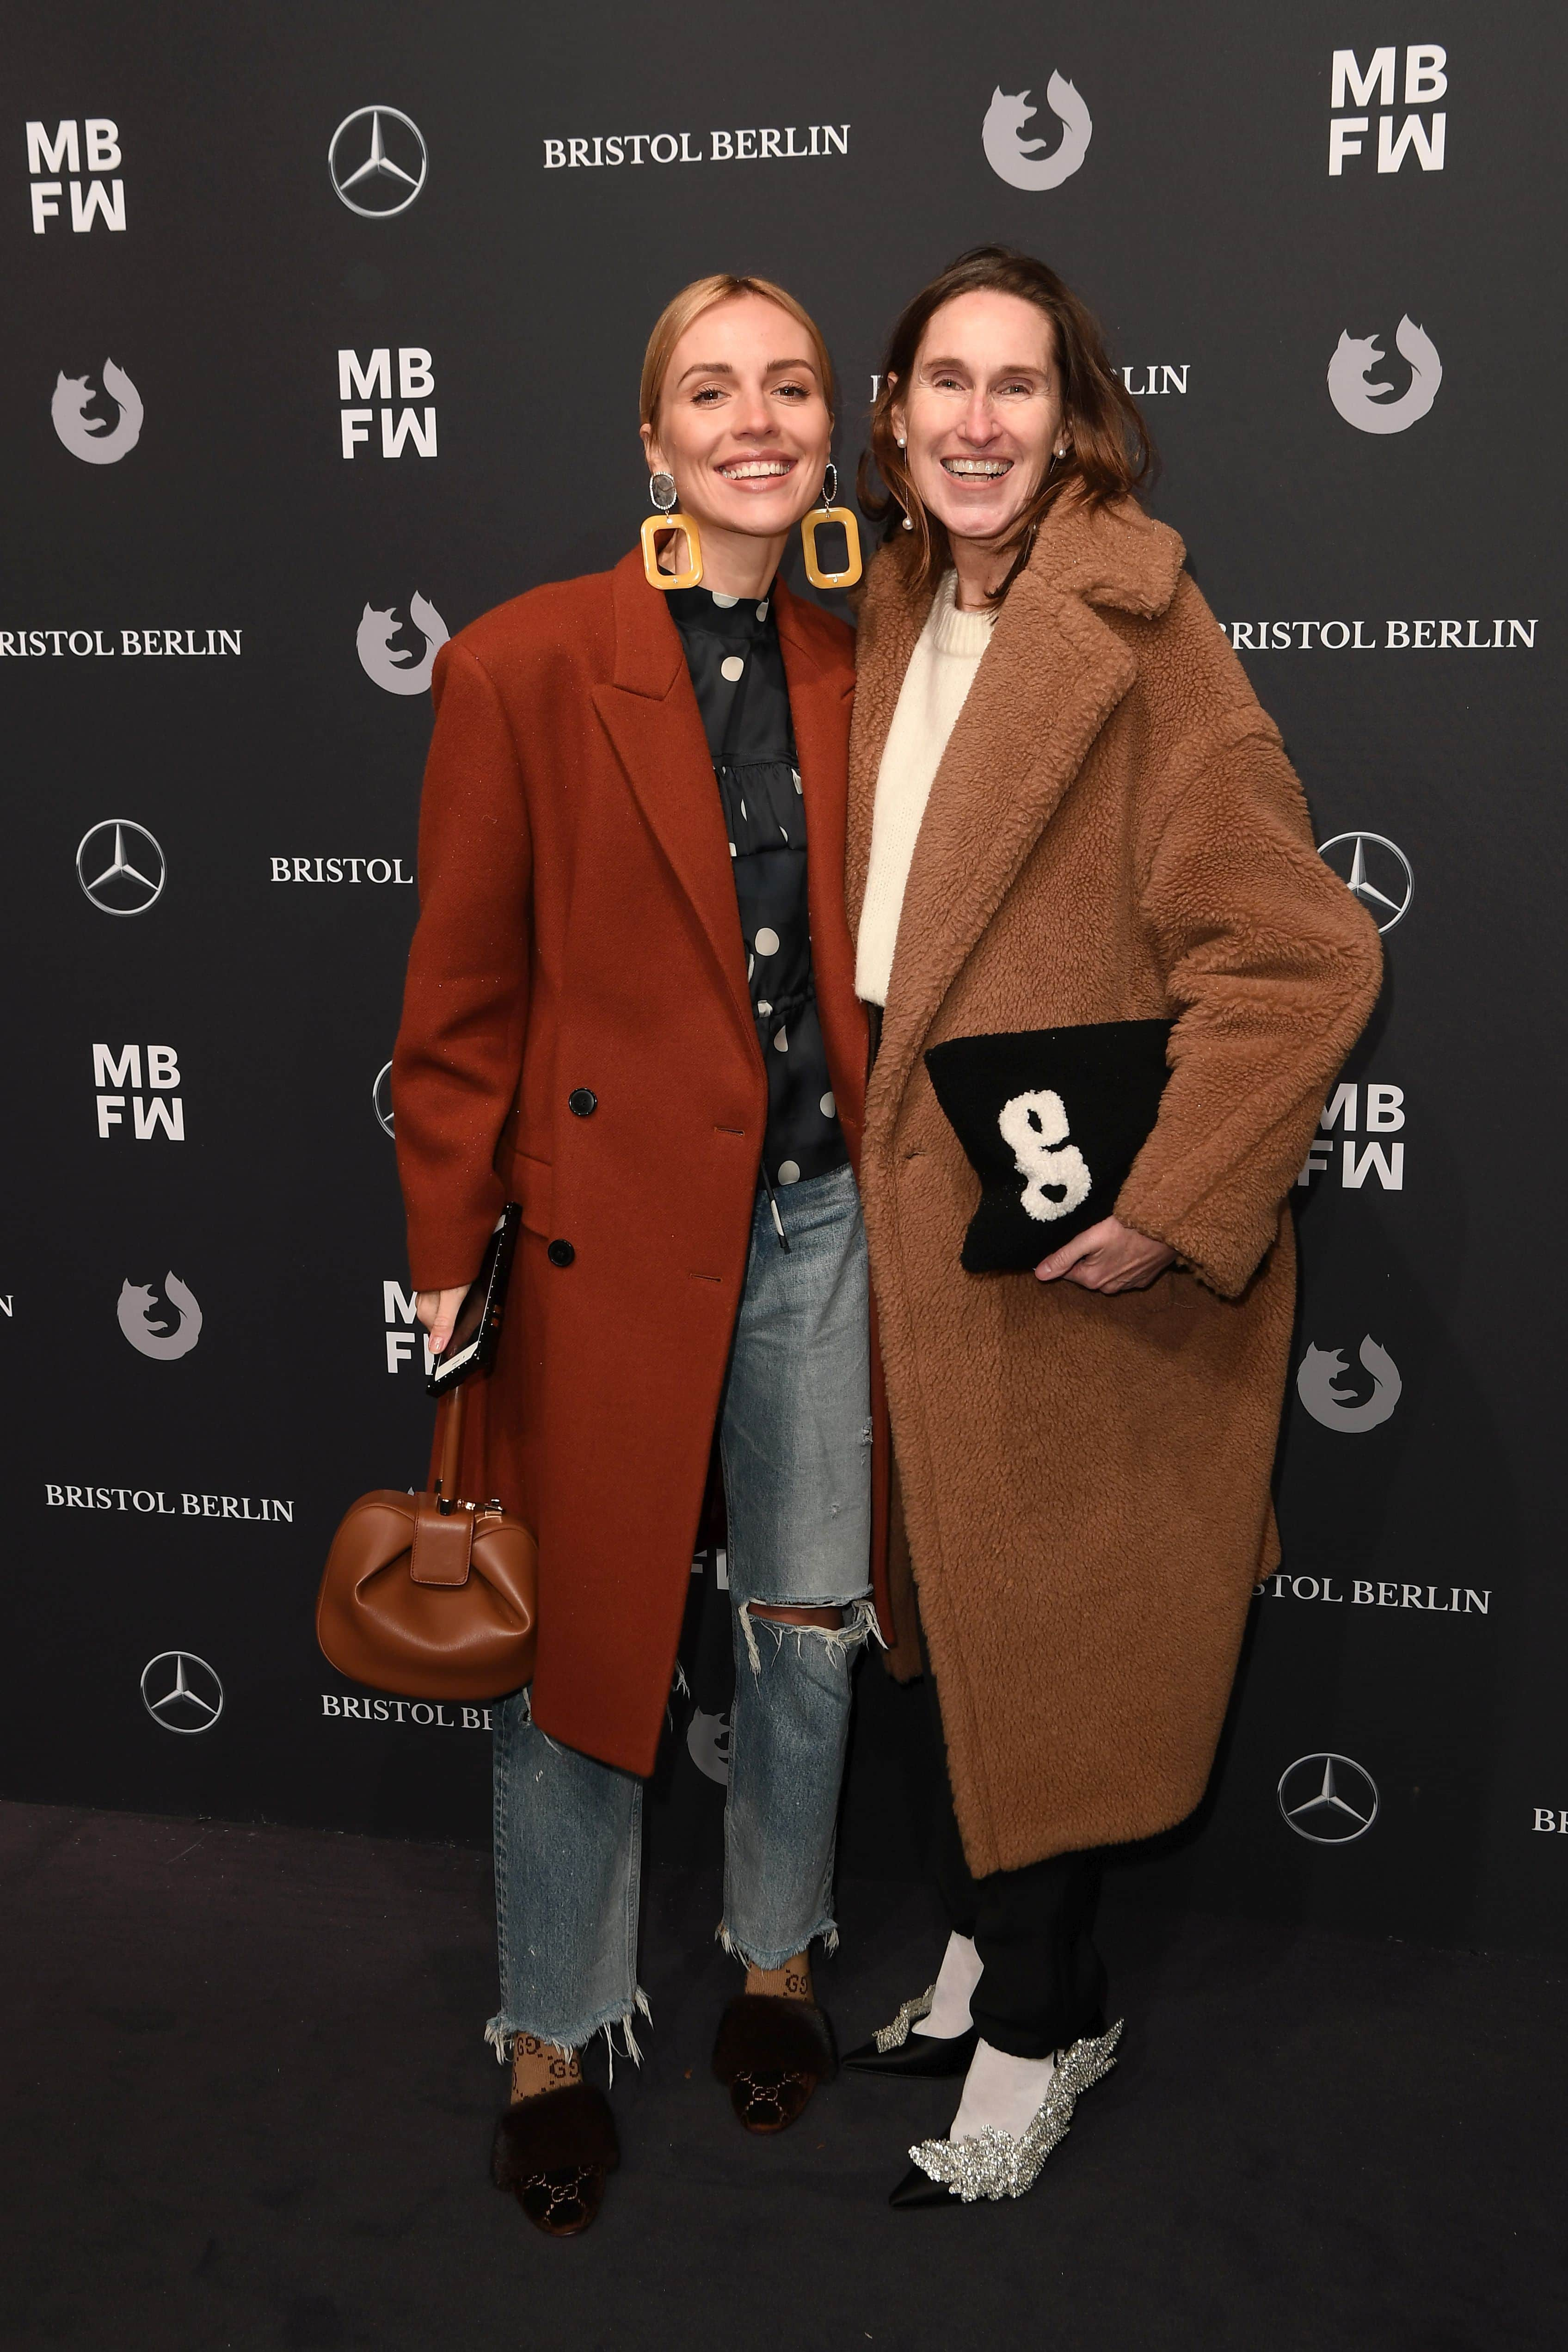 BERLIN, GERMANY - JANUARY 15: Annette Weber and guest attends the Dawid Tomaszewski show during the MBFW Berlin January 2018 at ewerk on January 15, 2018 in Berlin, Germany. (Photo by Matthias Nareyek/Getty Images for MBFW) *** Local Caption *** Annette Weber